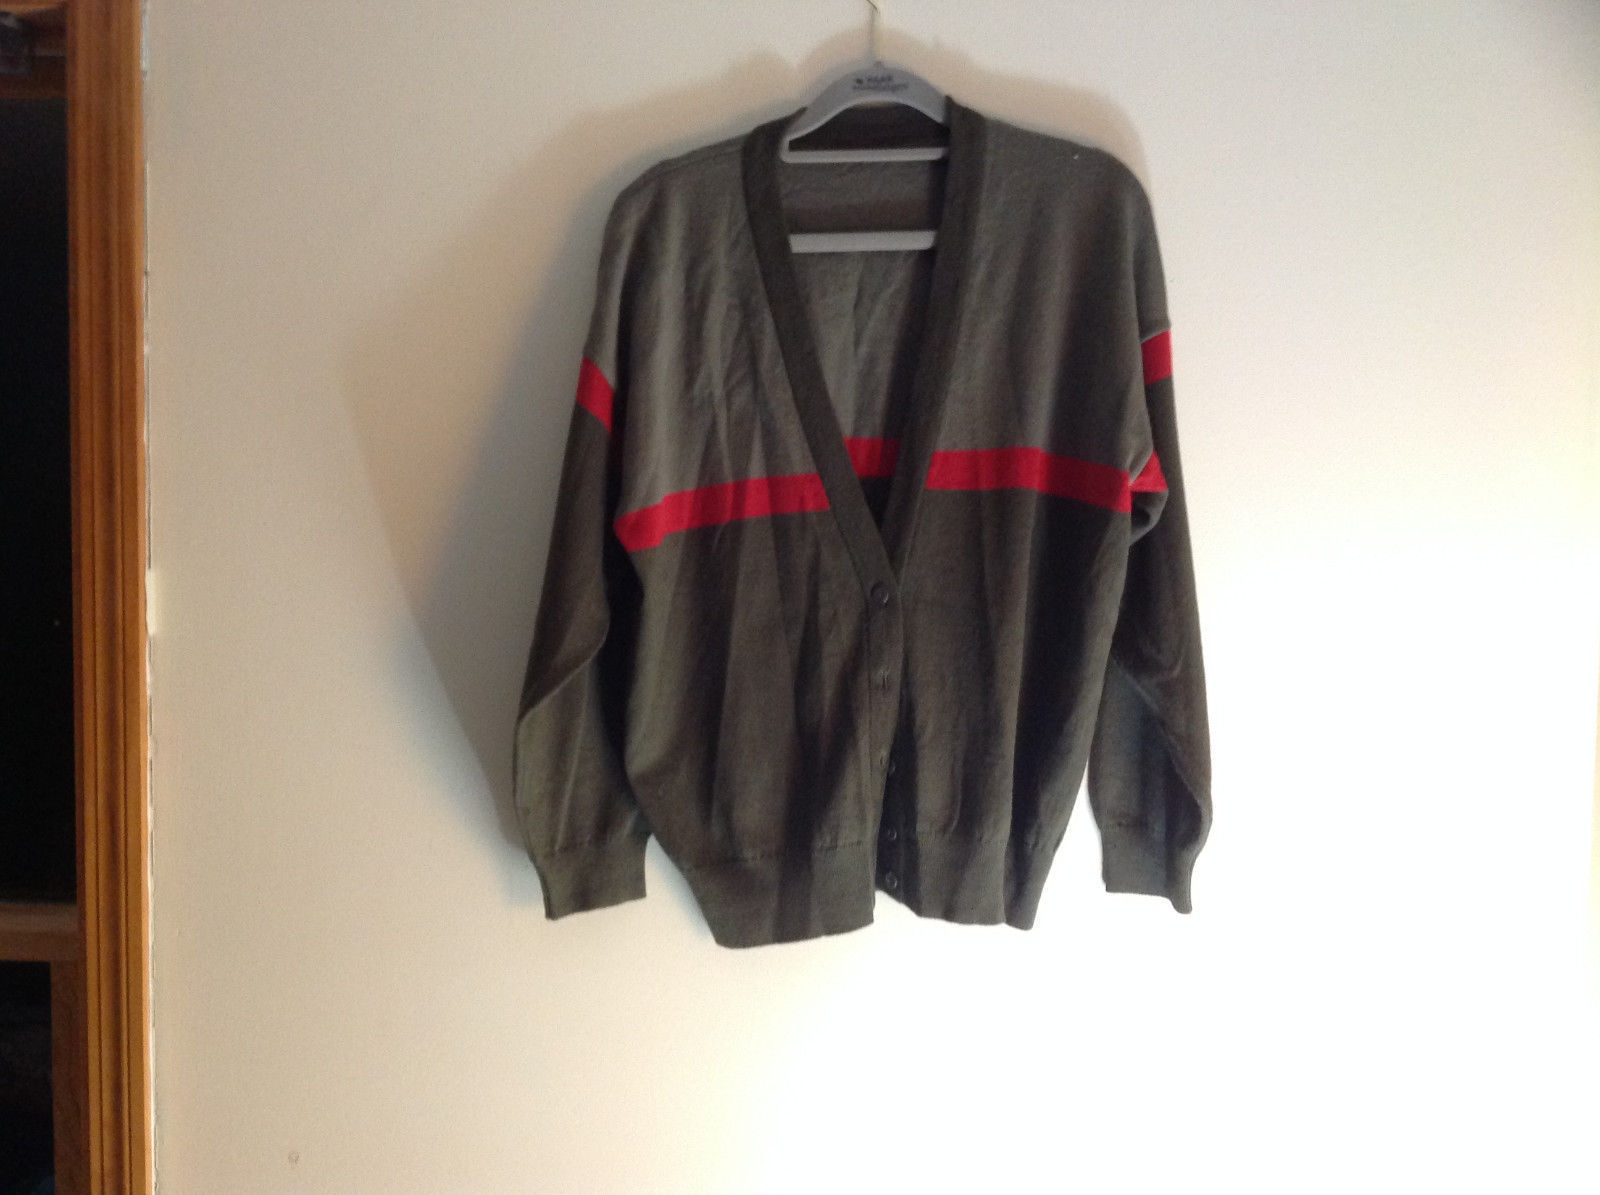 Woolite Dark Green Light Green with Red Strip Long Sleeve V-Neck Sweater No Tag